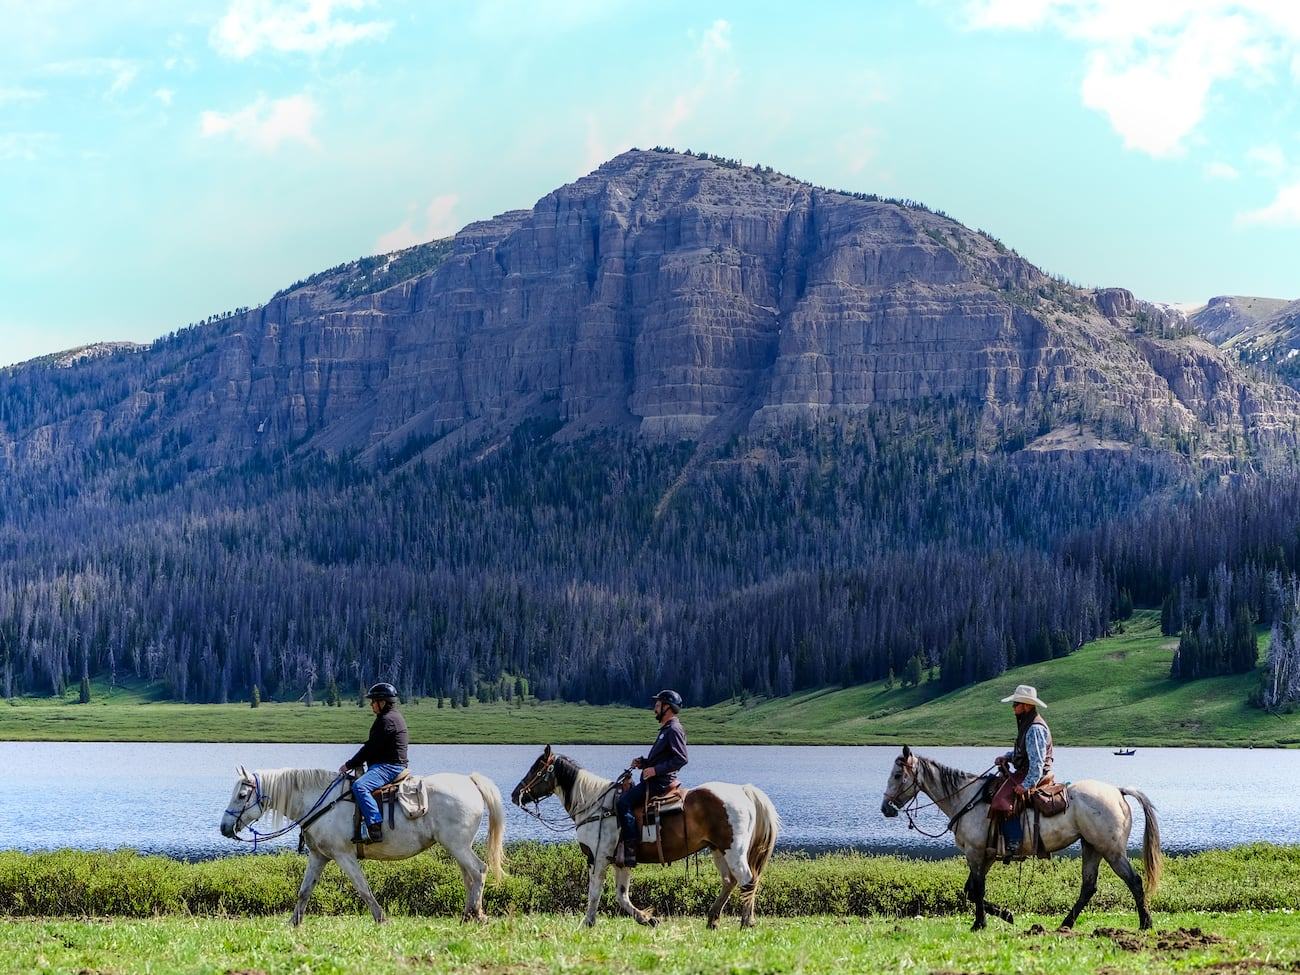 Three people ride horses near a lake across from a mountain with a forest at its base